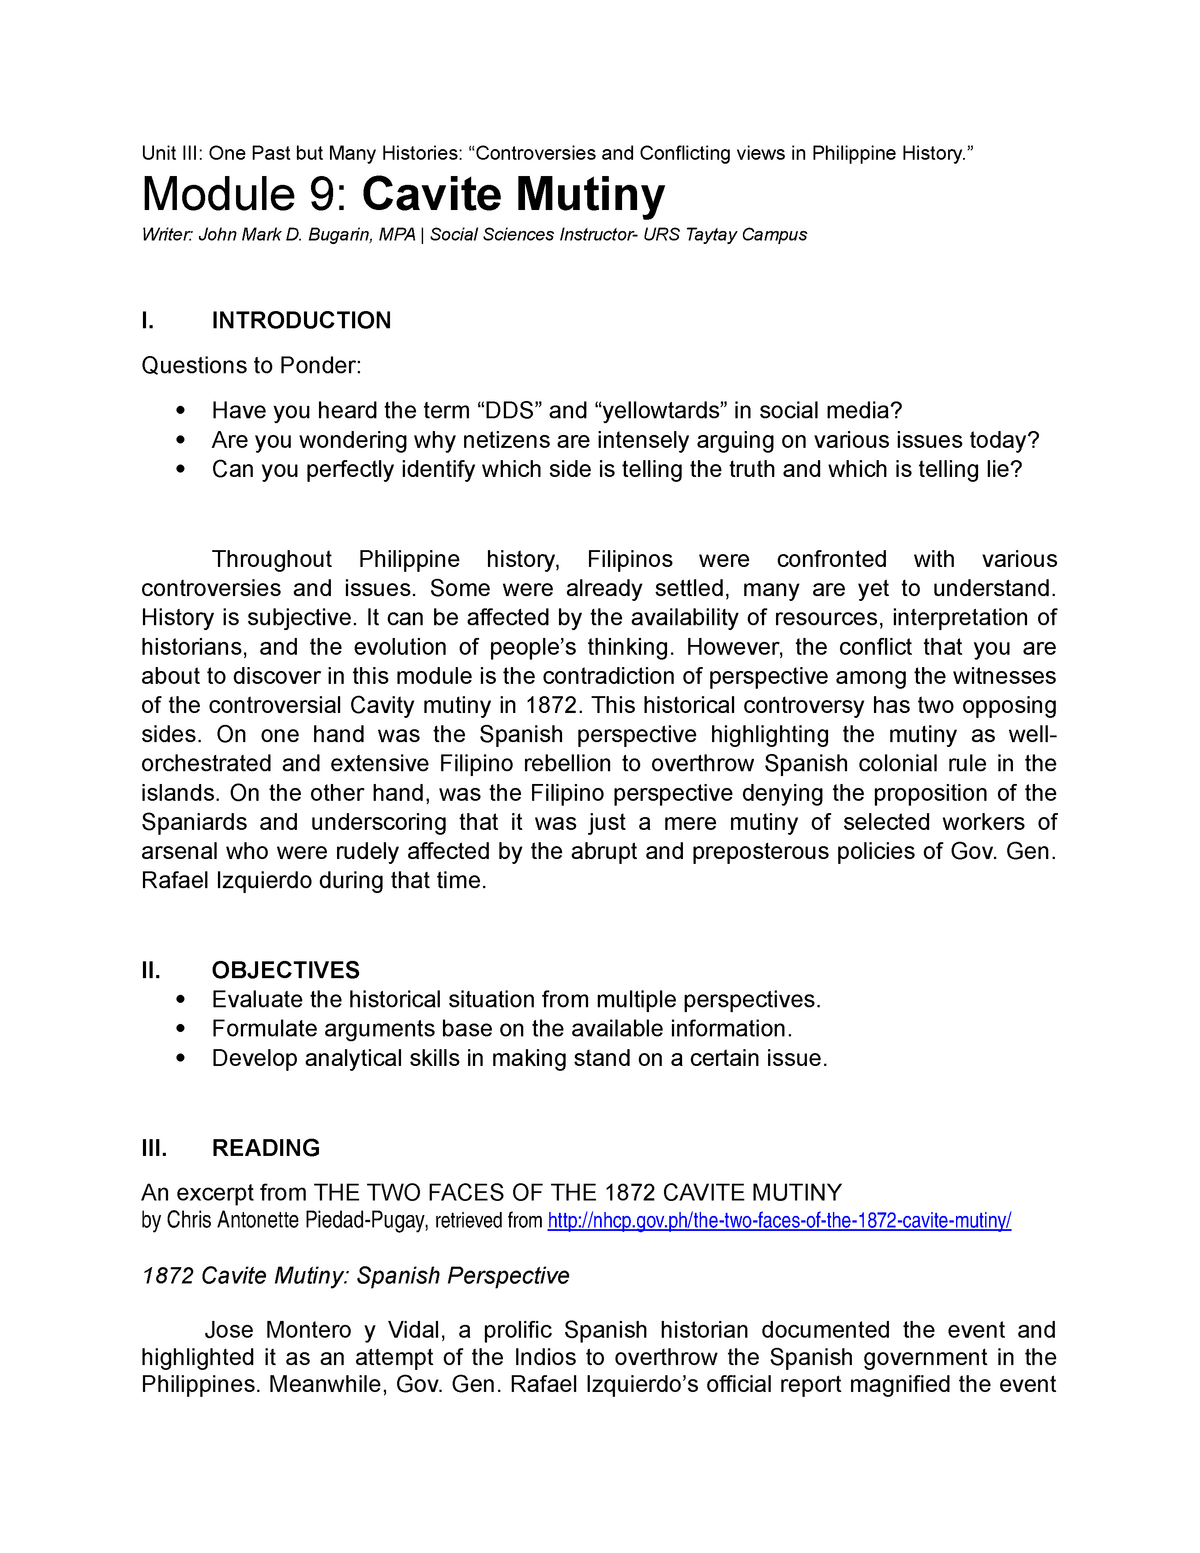 Module 9 Cavite Mutiny Hist 1 Unit One Past But Many Histories And Conflicting Views In Philippine Module Cavite Mutiny Writer John Mark Bugarin Mpa Social Studocu